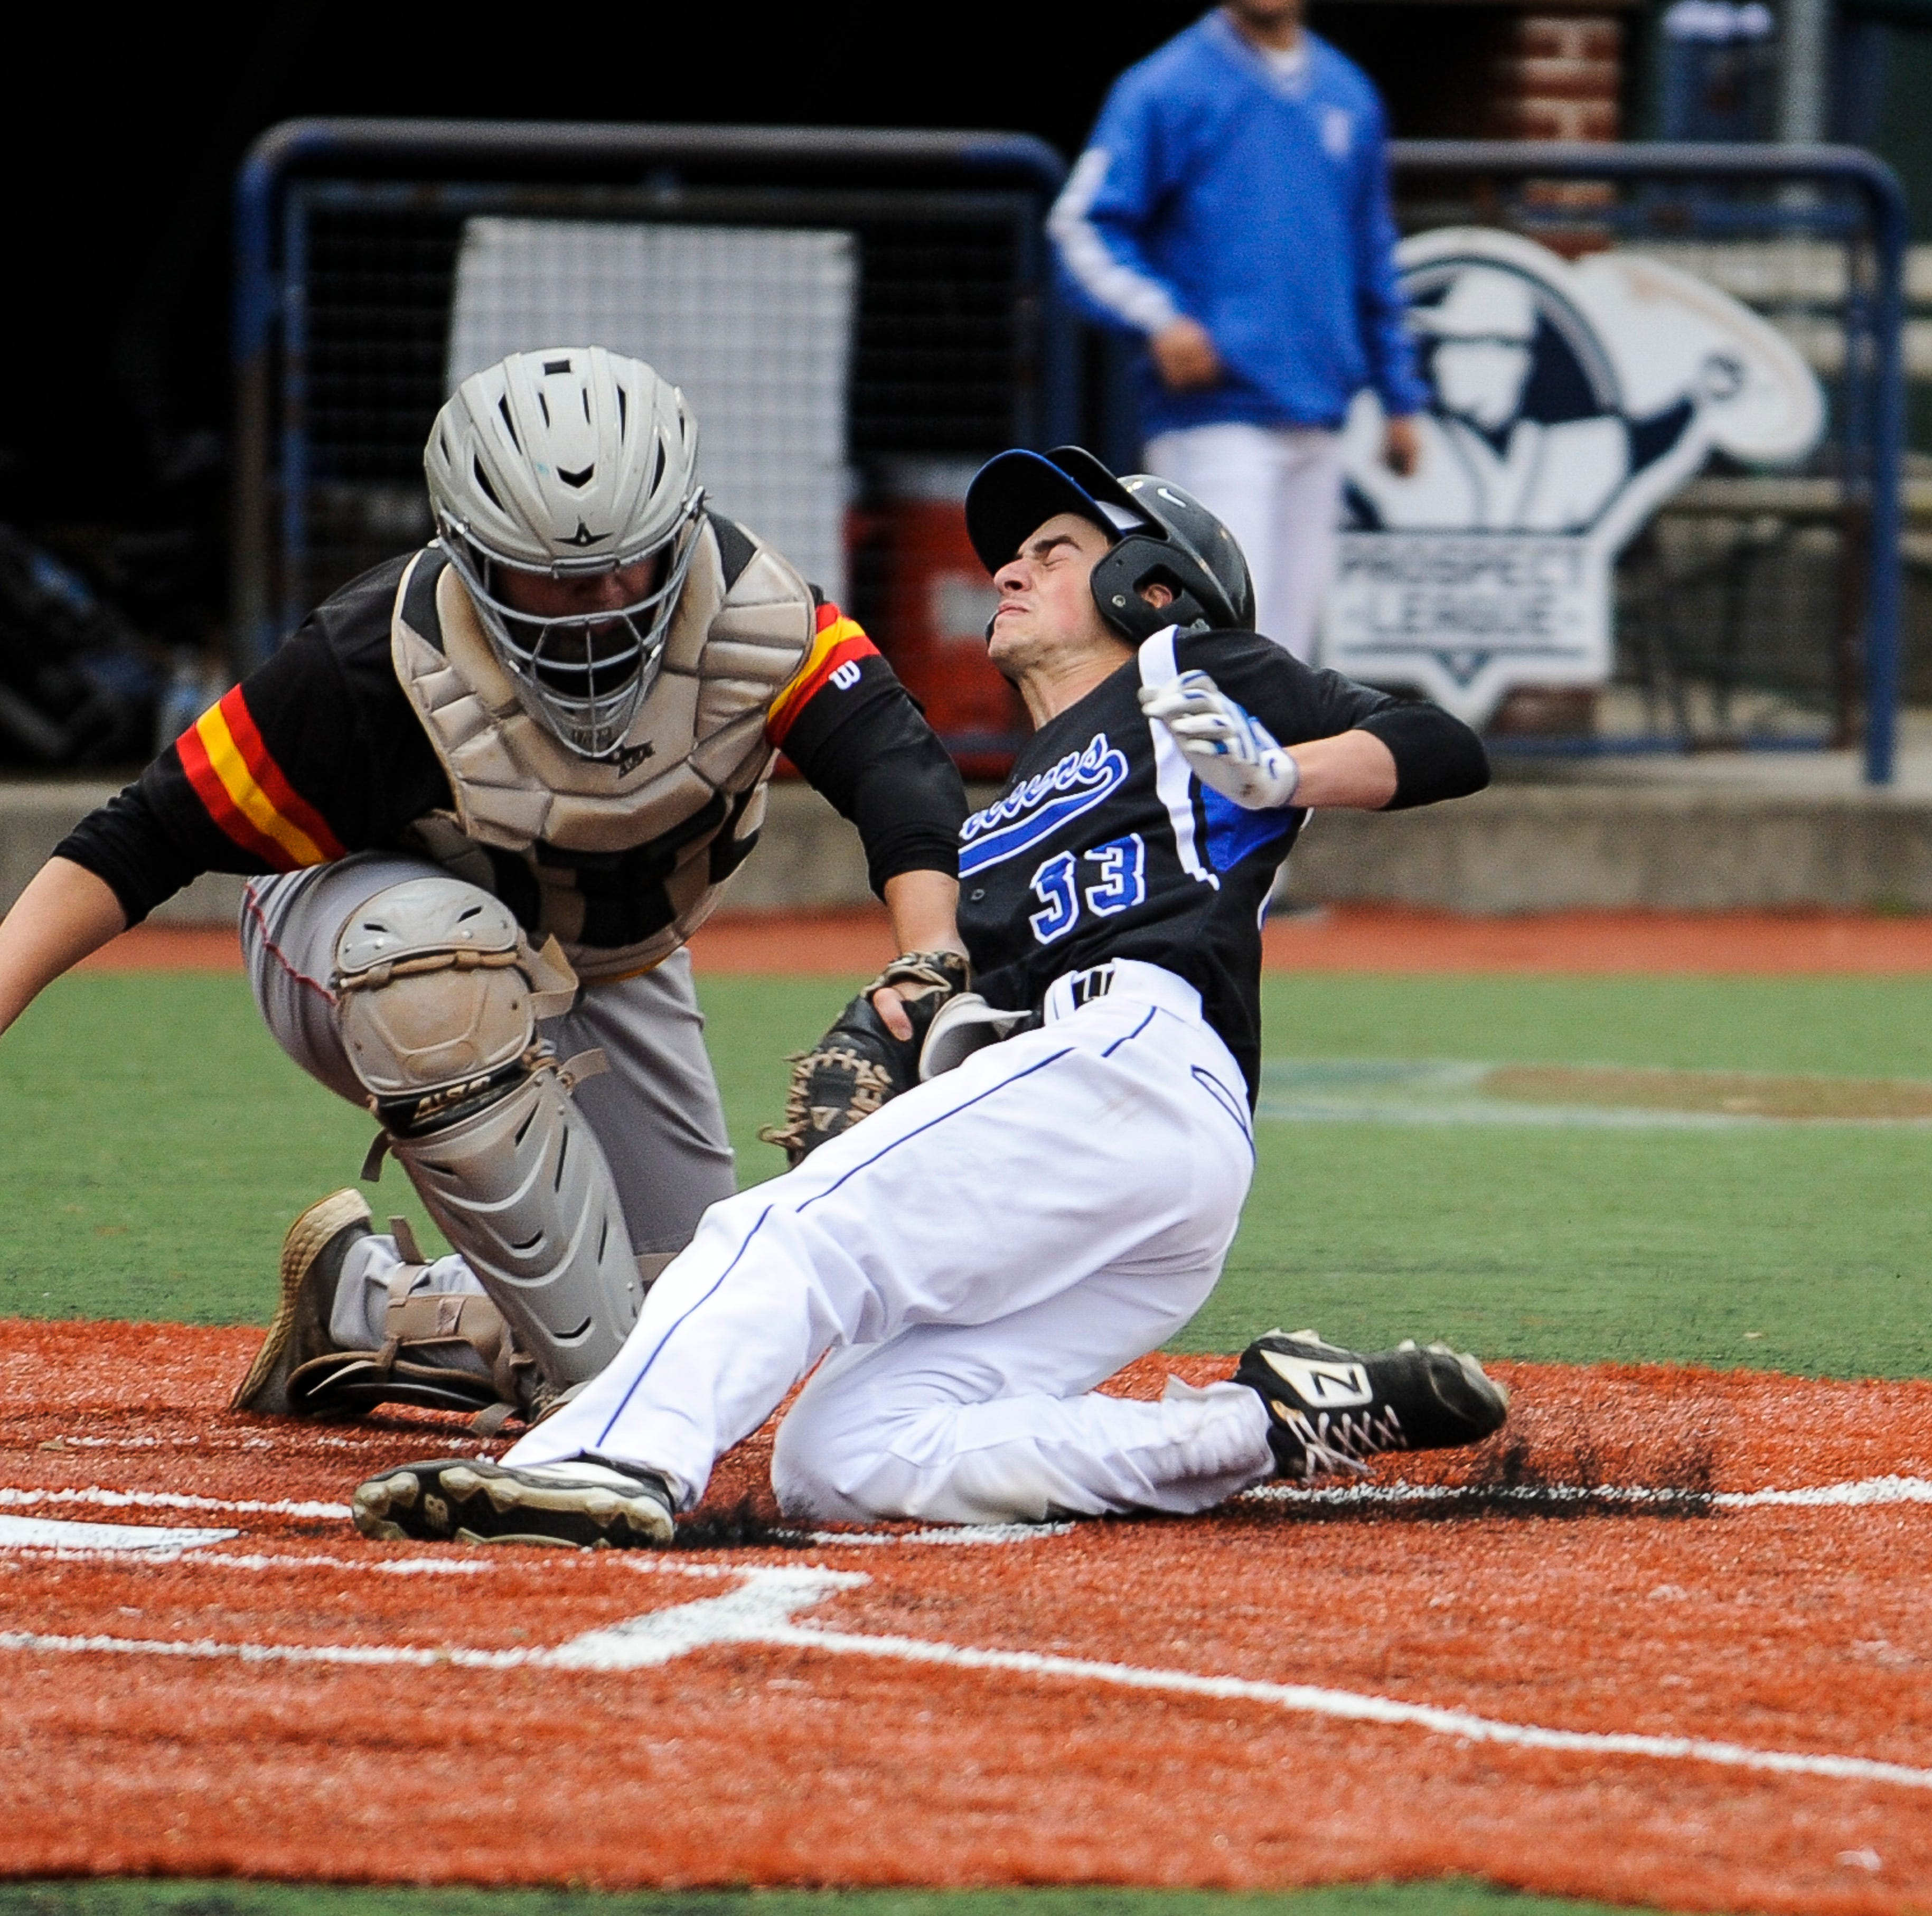 OHIO HS BASEBALL: Chillicothe falls to Big Walnut 9-3 in D-I sectional semifinal